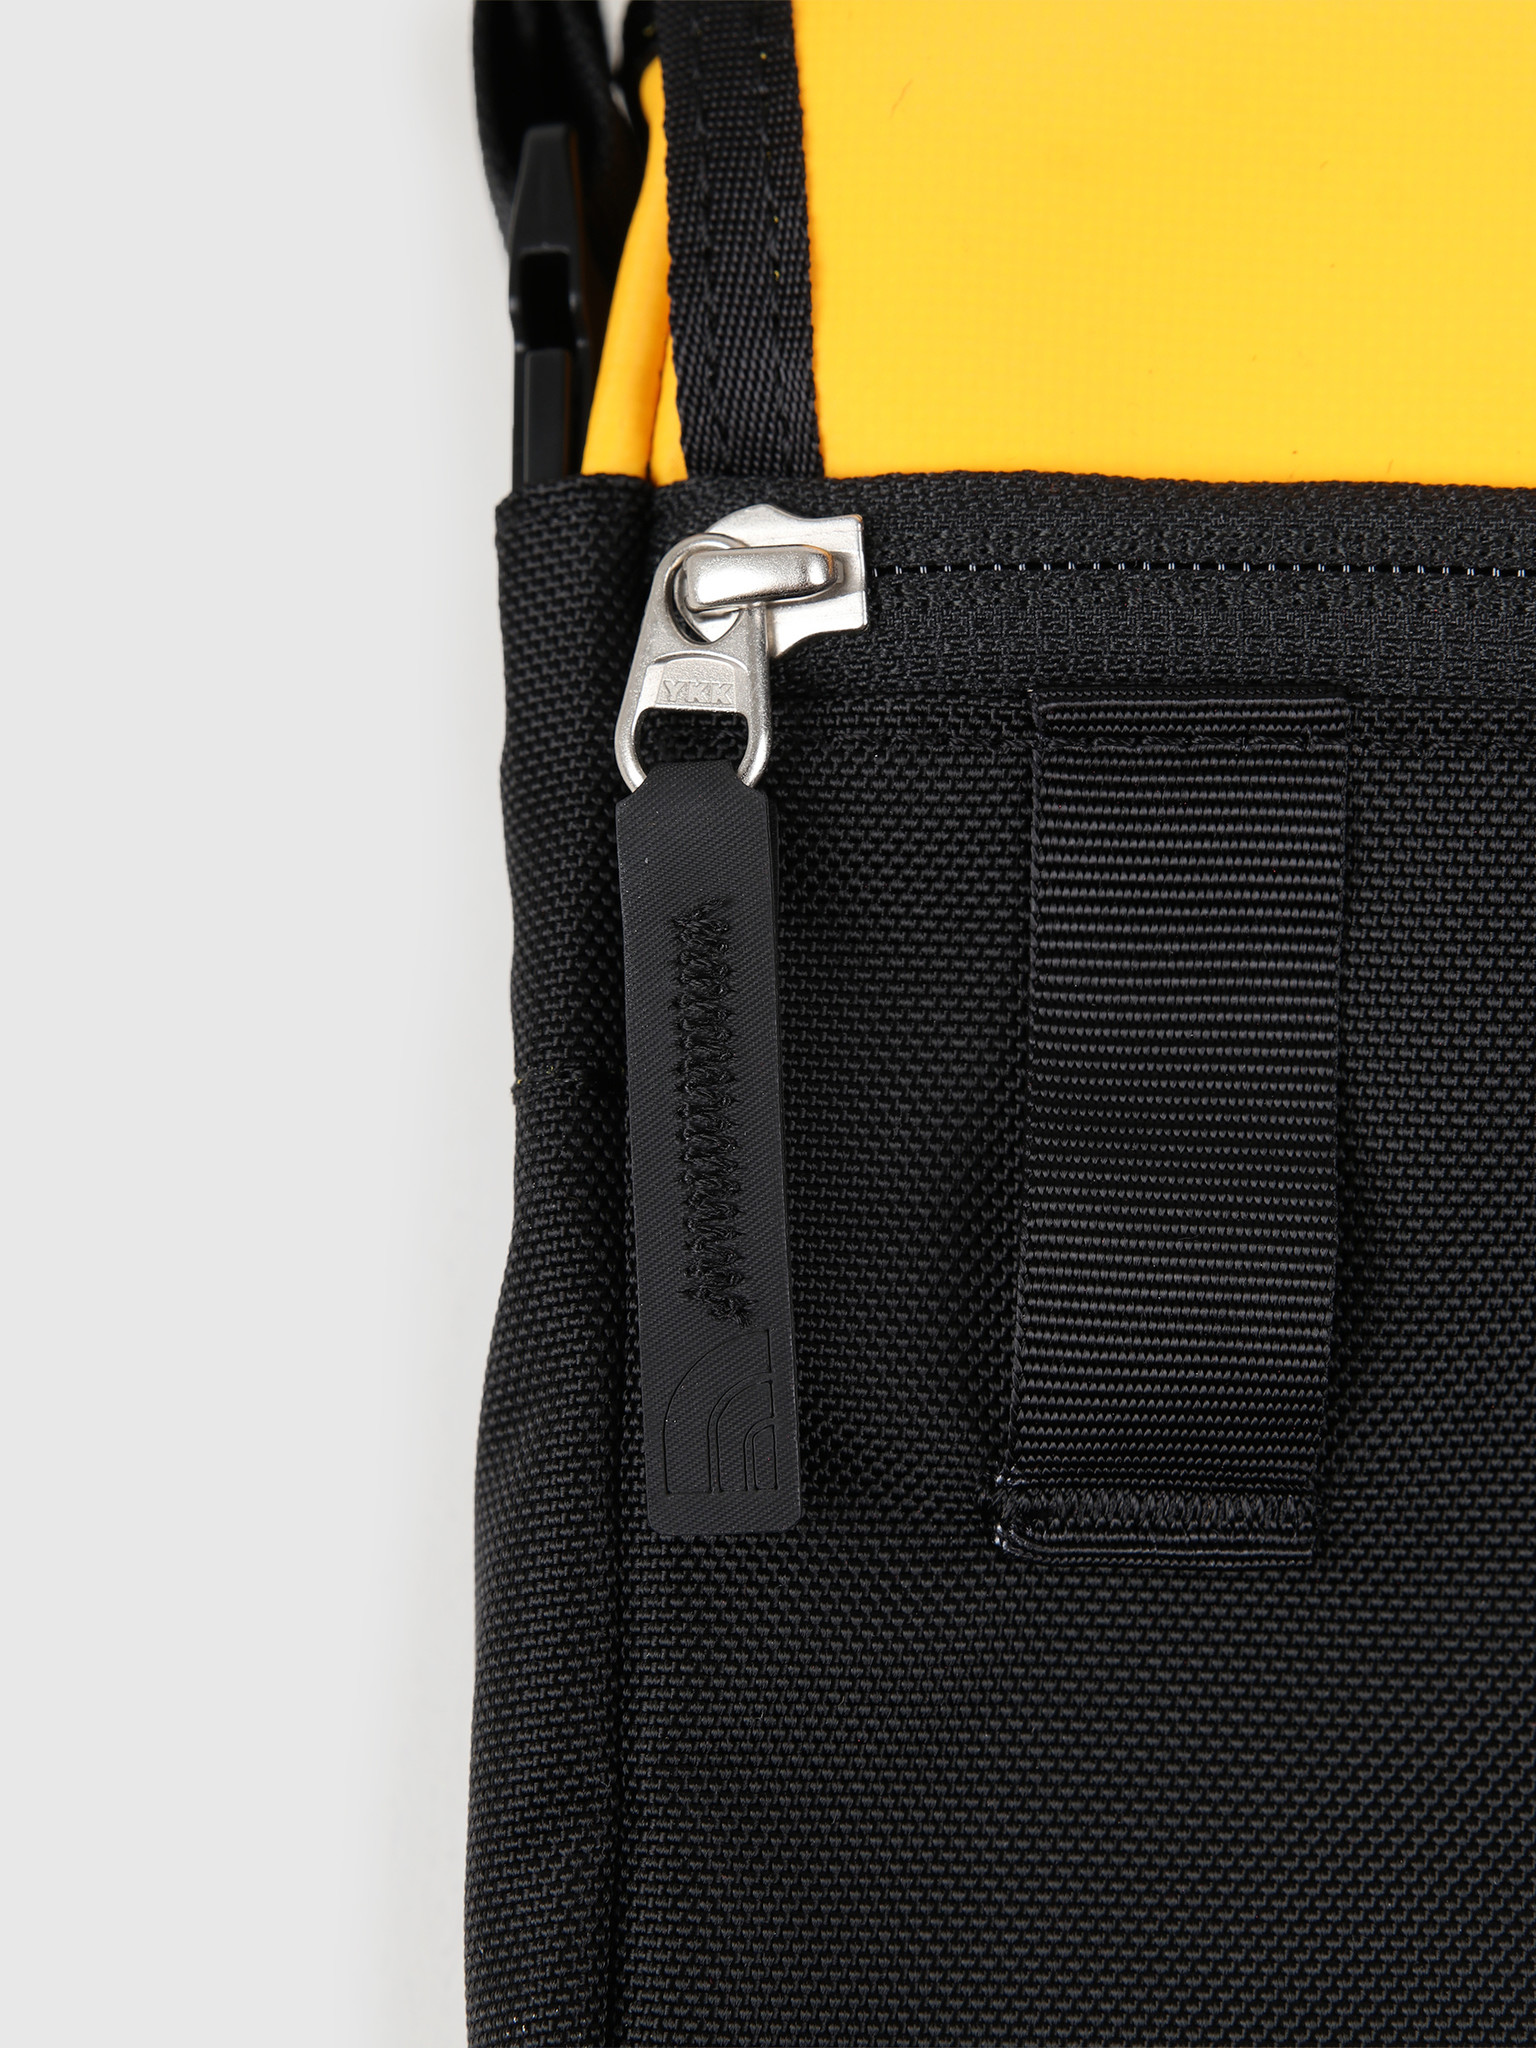 The North Face The North Face Bardu Bag Yellow Black T0AVAQLR0